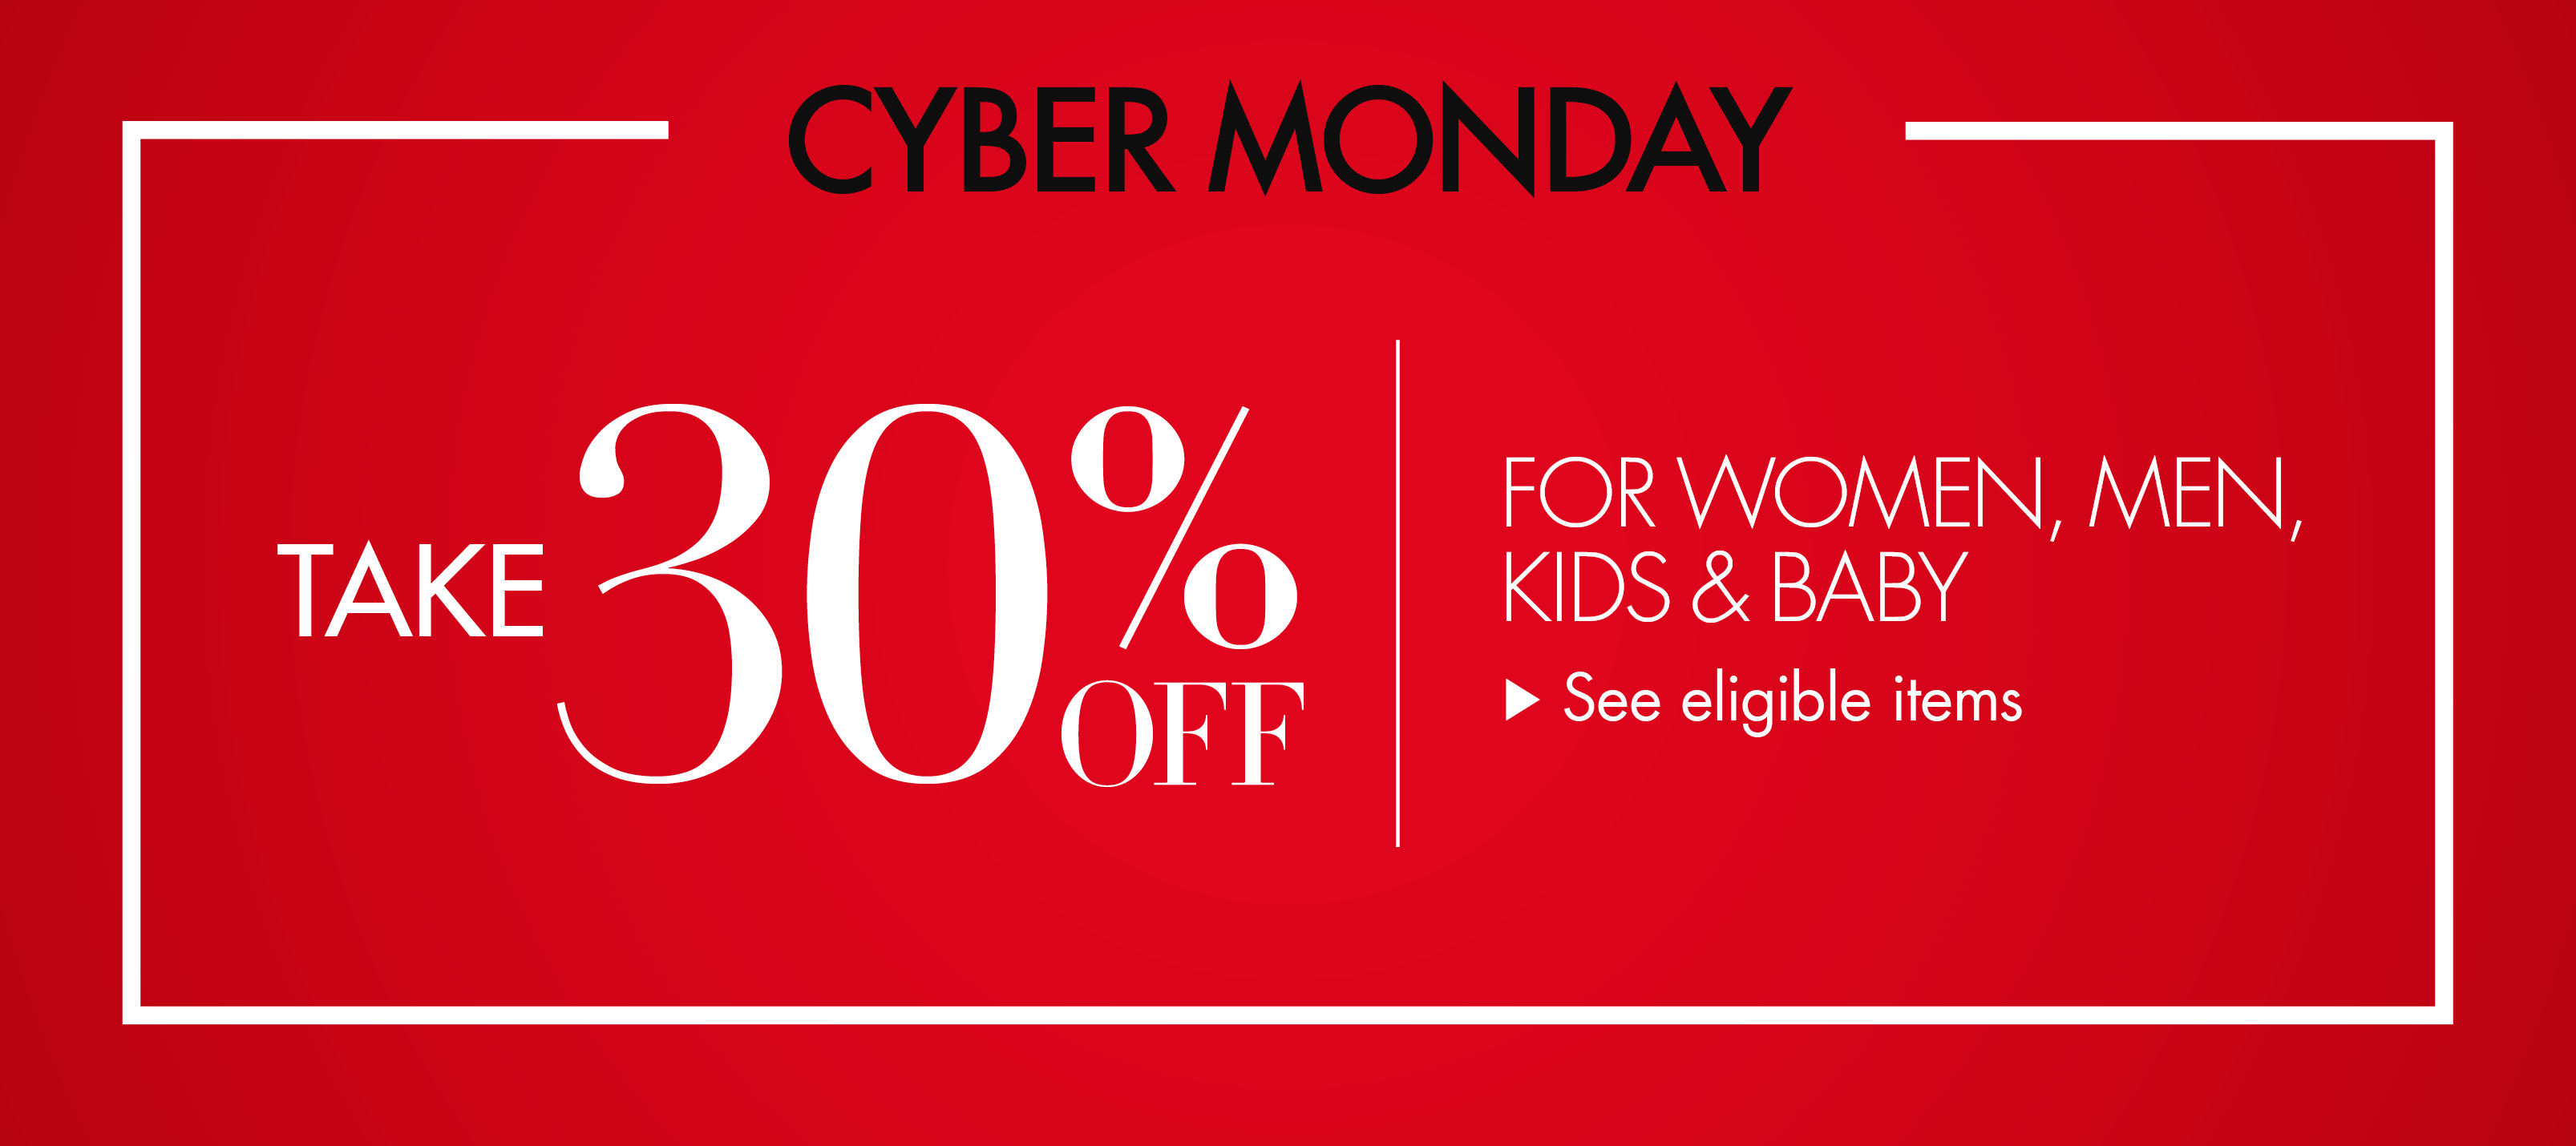 Cyber Monday Take 30% Off